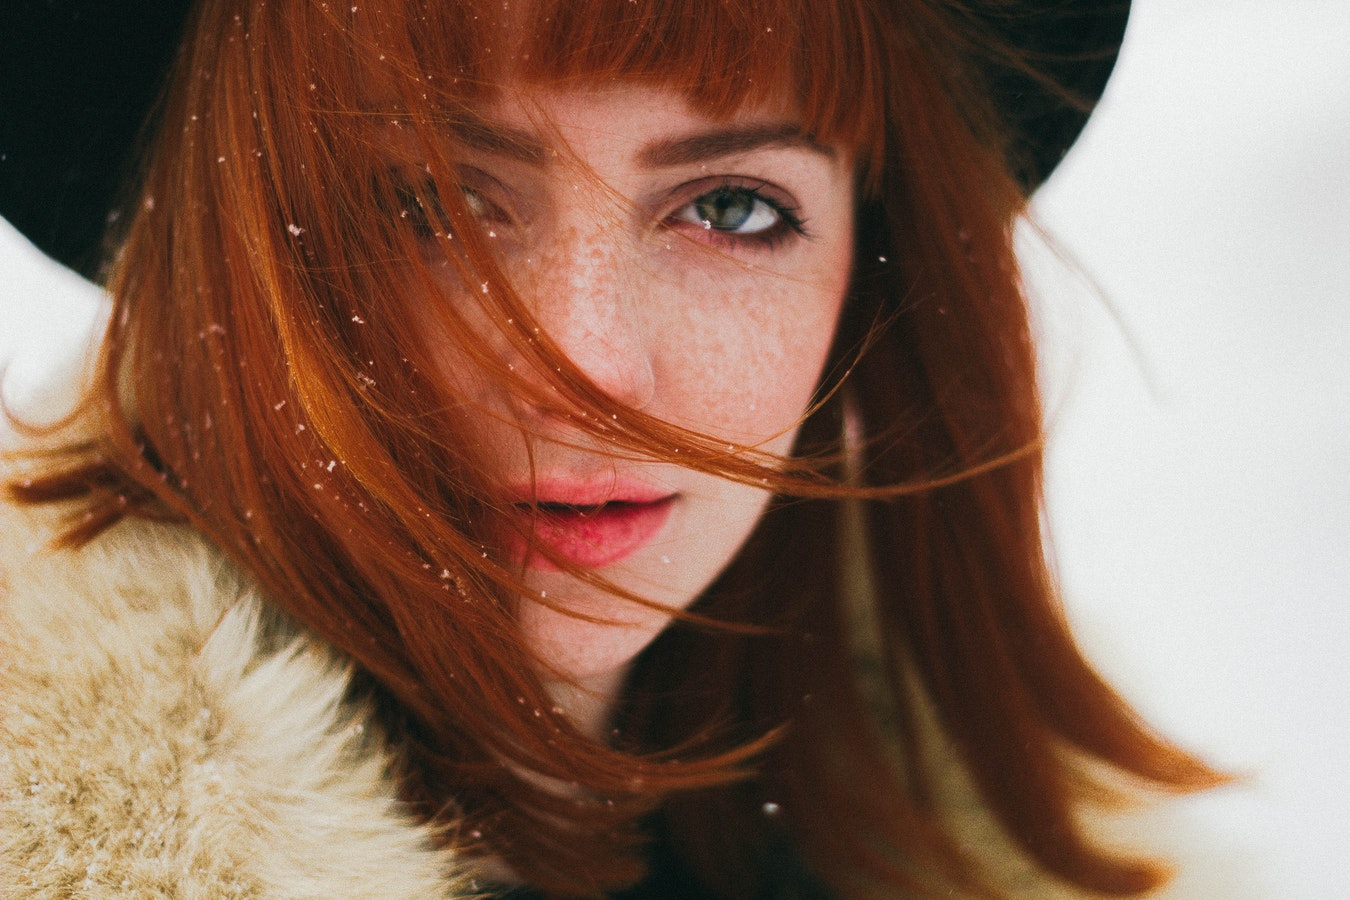 ginger girl with pale skin and freckles in black hat and fur coatat winter